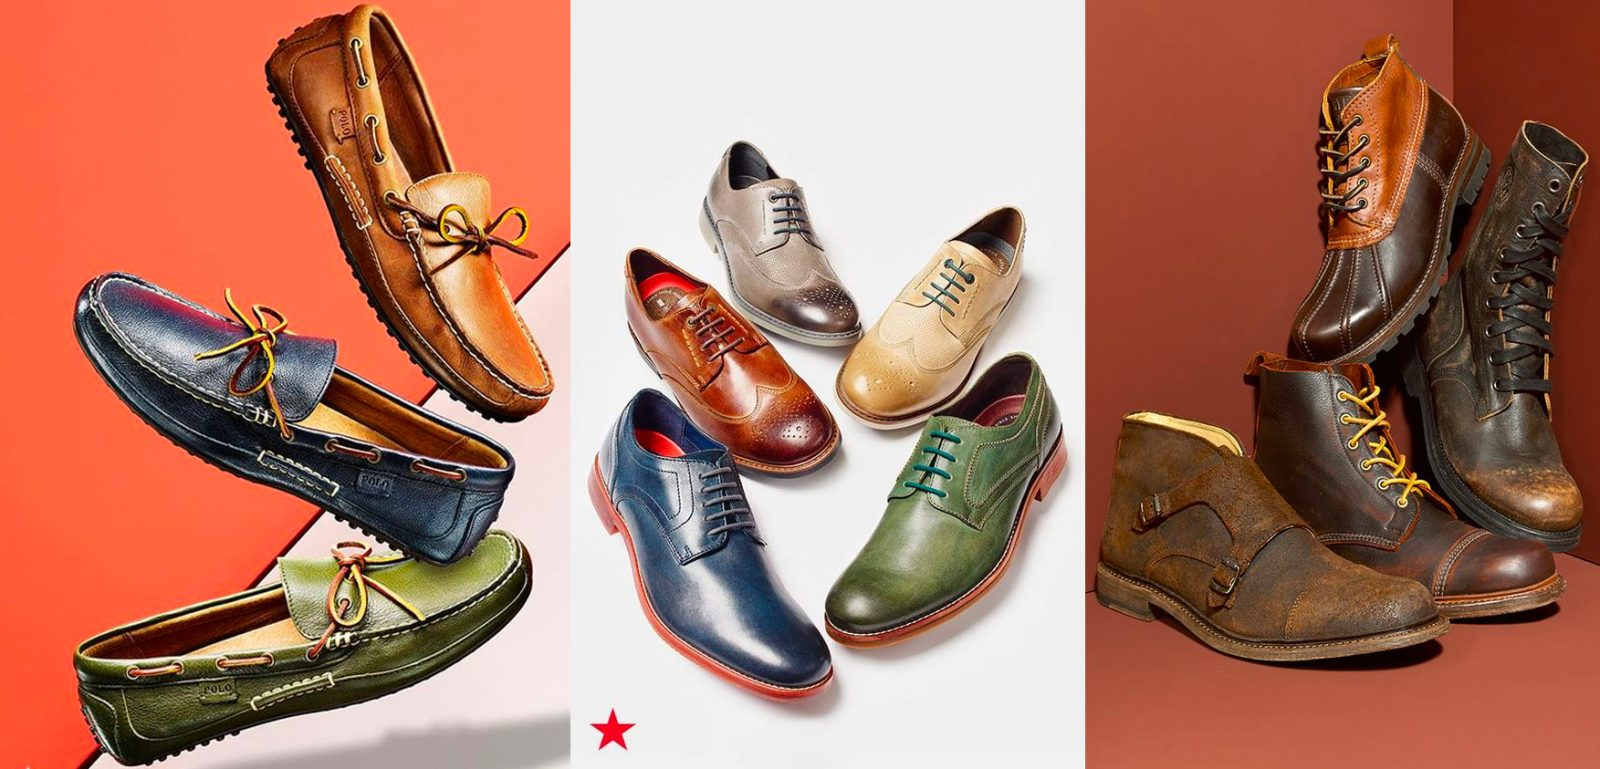 a5fb45b6dfc Macy's Men's Clearance Shoe Sale offers up to 70% off Cole Haan, UGG ...